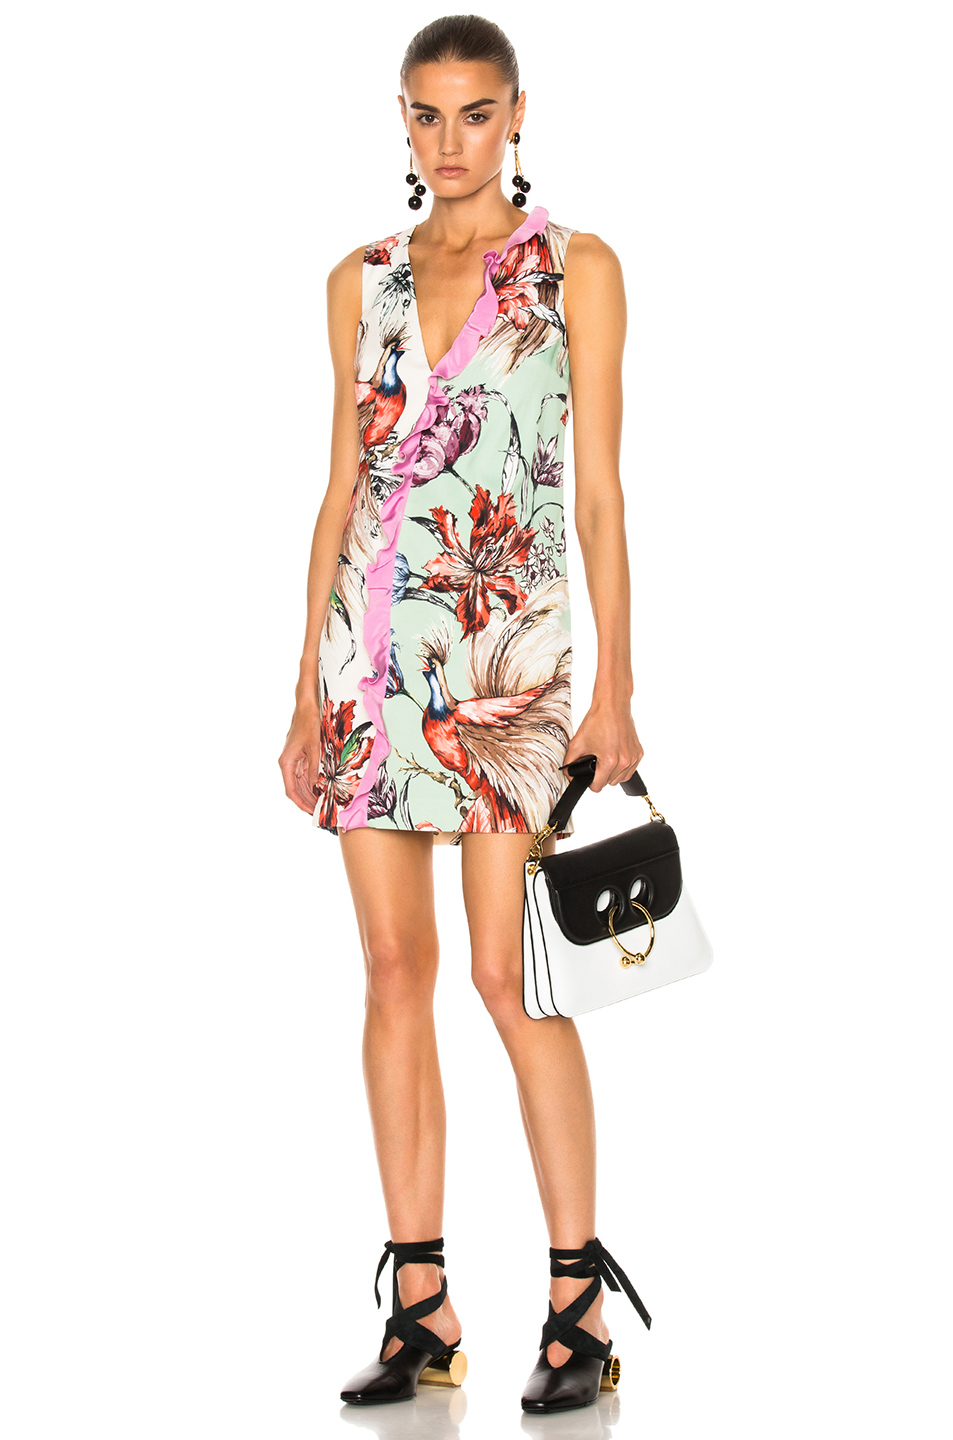 Fausto Puglisi Print Dress in Floral,Green,Neutrals